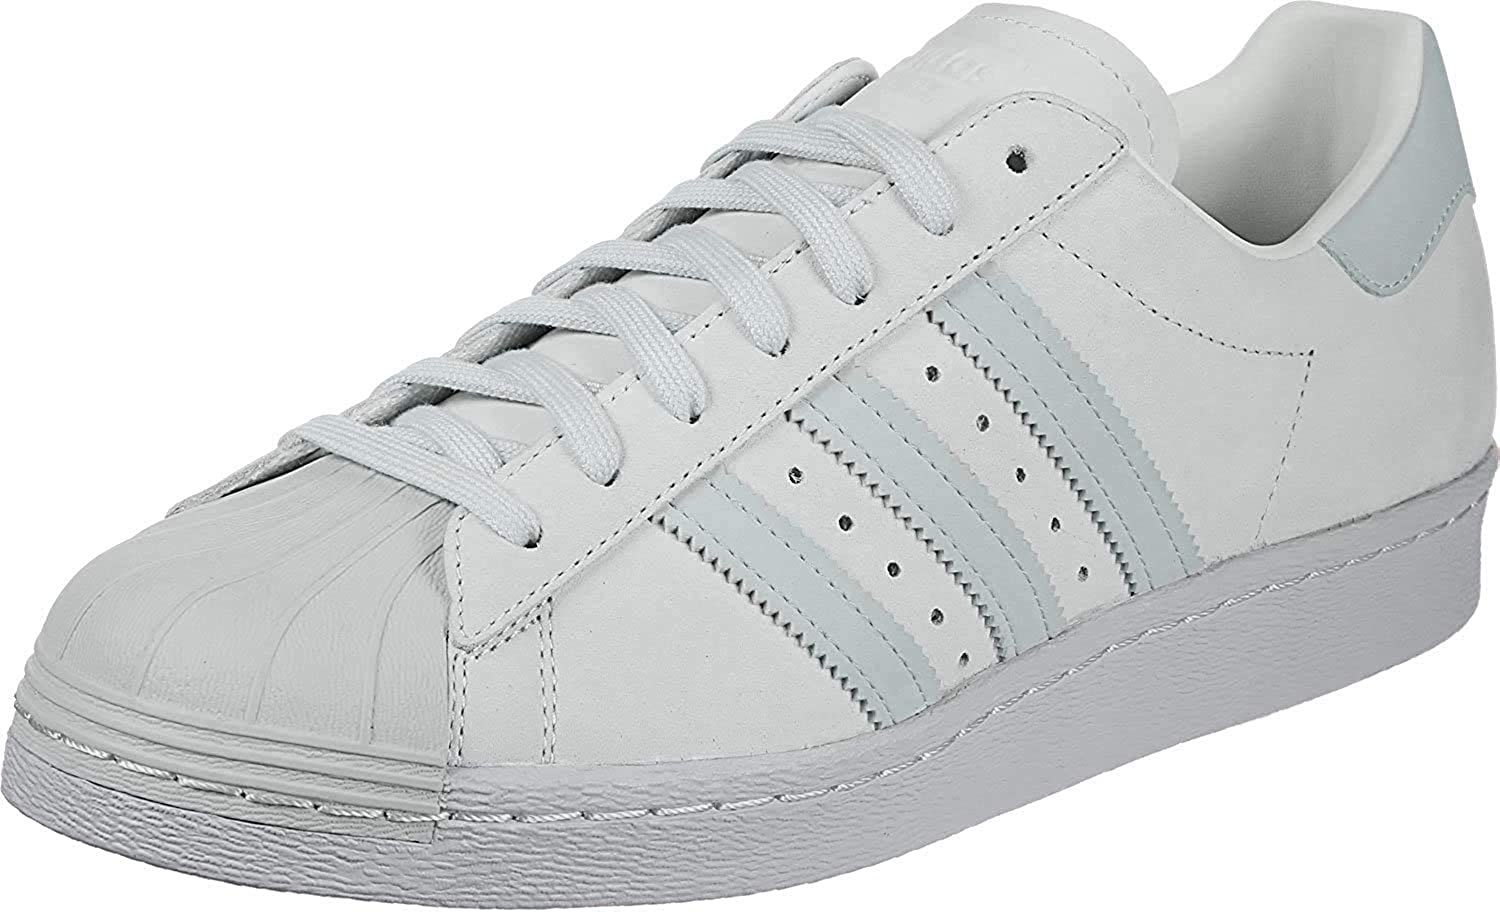 adidas Superstar 80s Shoes: Amazon.co